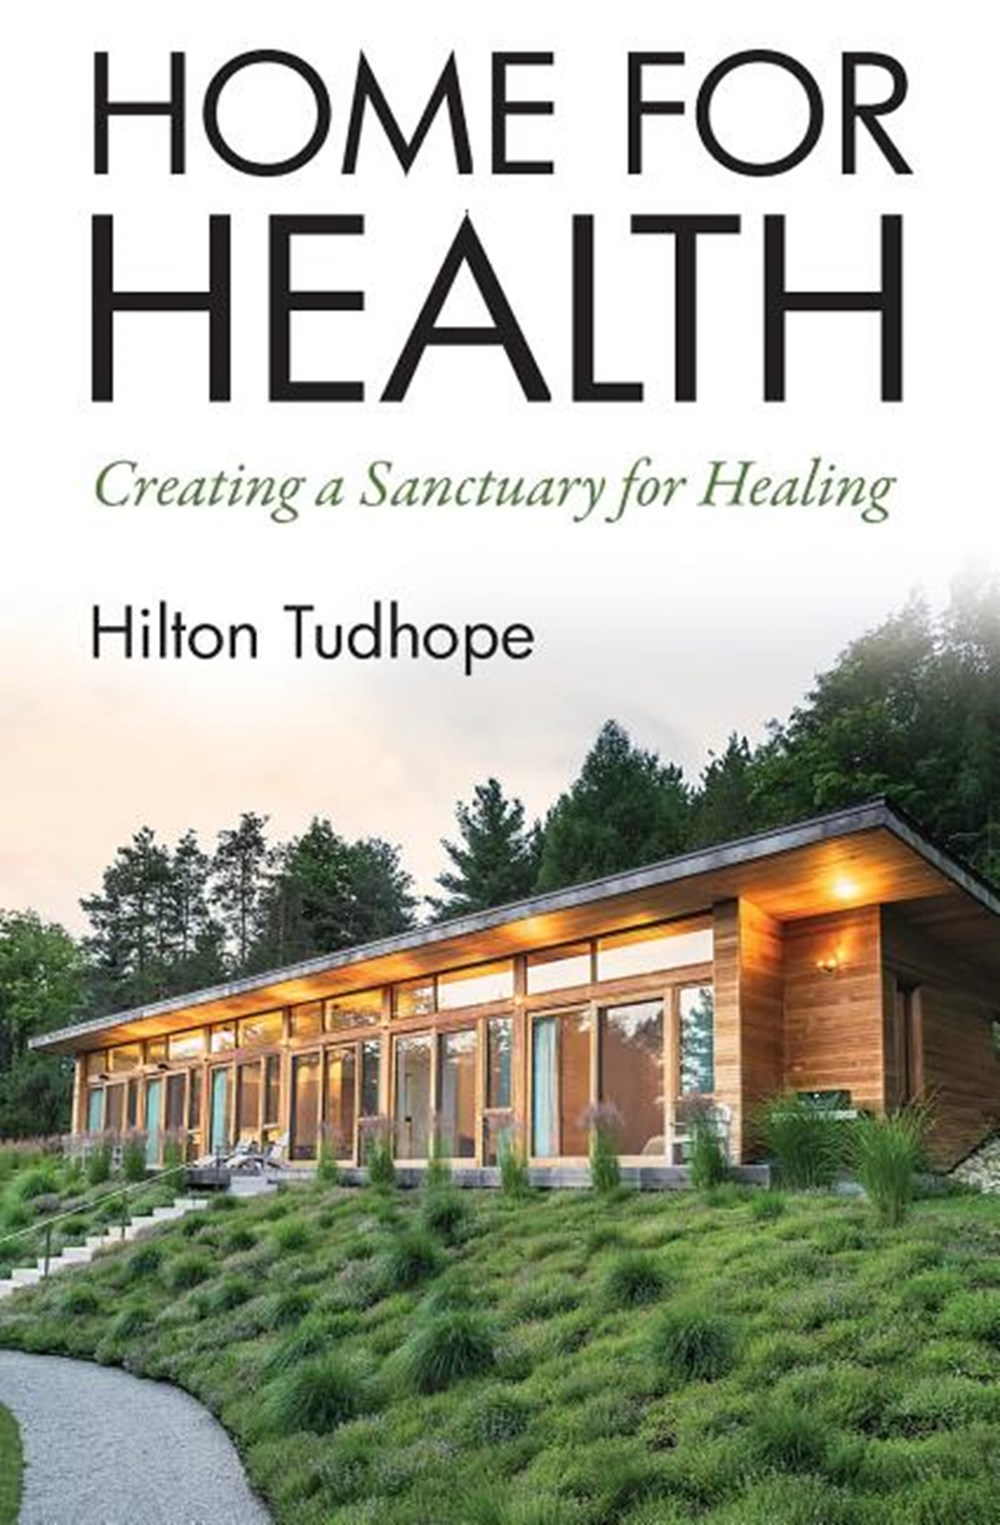 Home for Health Creating a Sanctuary for Healing